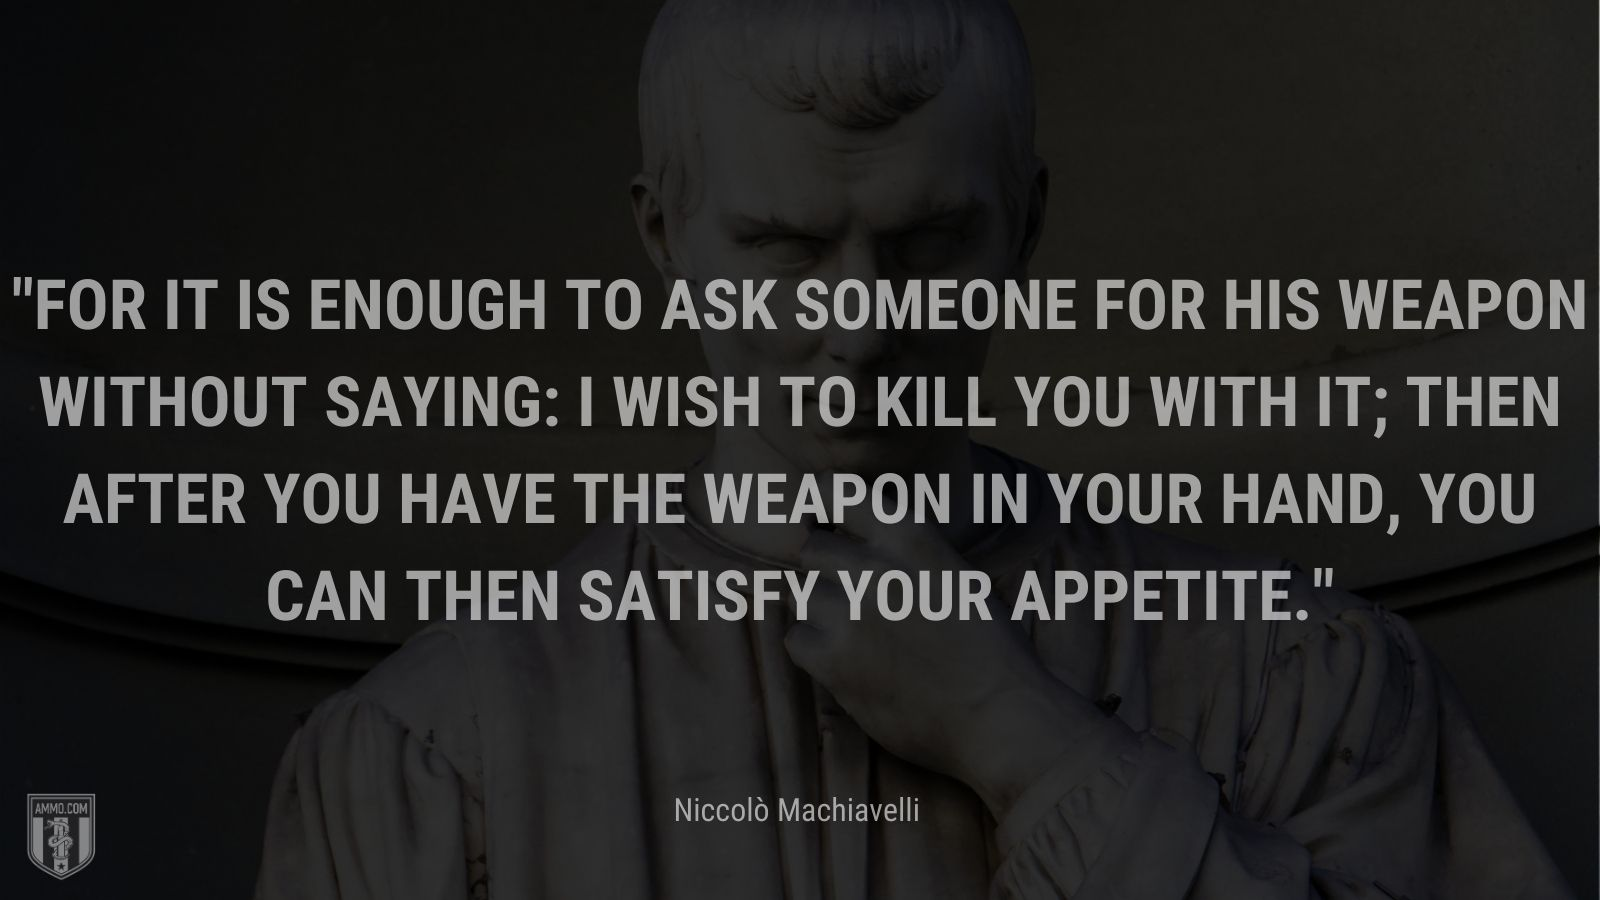 """""""For it is enough to ask someone for his weapon without saying: I wish to kill you with it; then after you have the weapon in your hand, you can then satisfy your appetite."""" - Niccolò Machiavelli"""